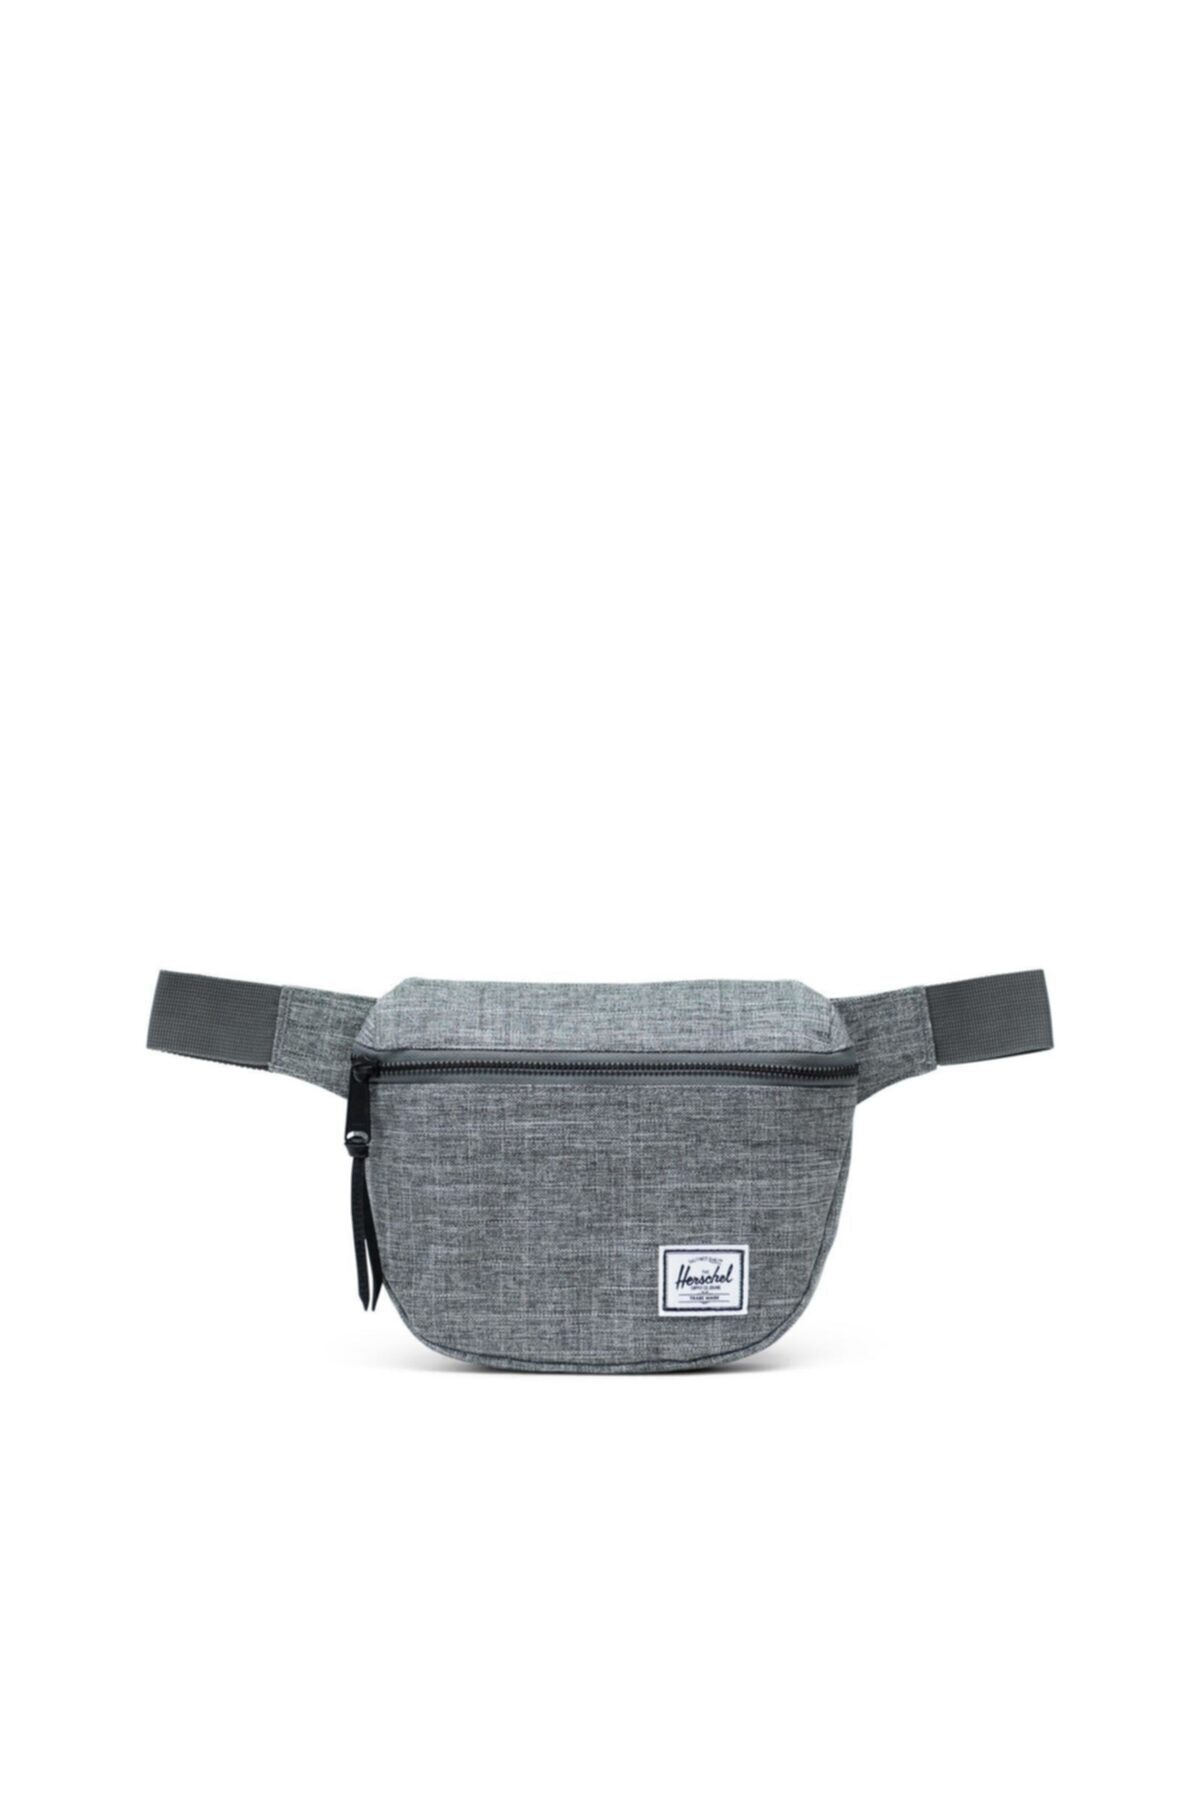 Herschel Supply Co. Herschel Bel Çantası Fifteen Raven Crosshatch 1